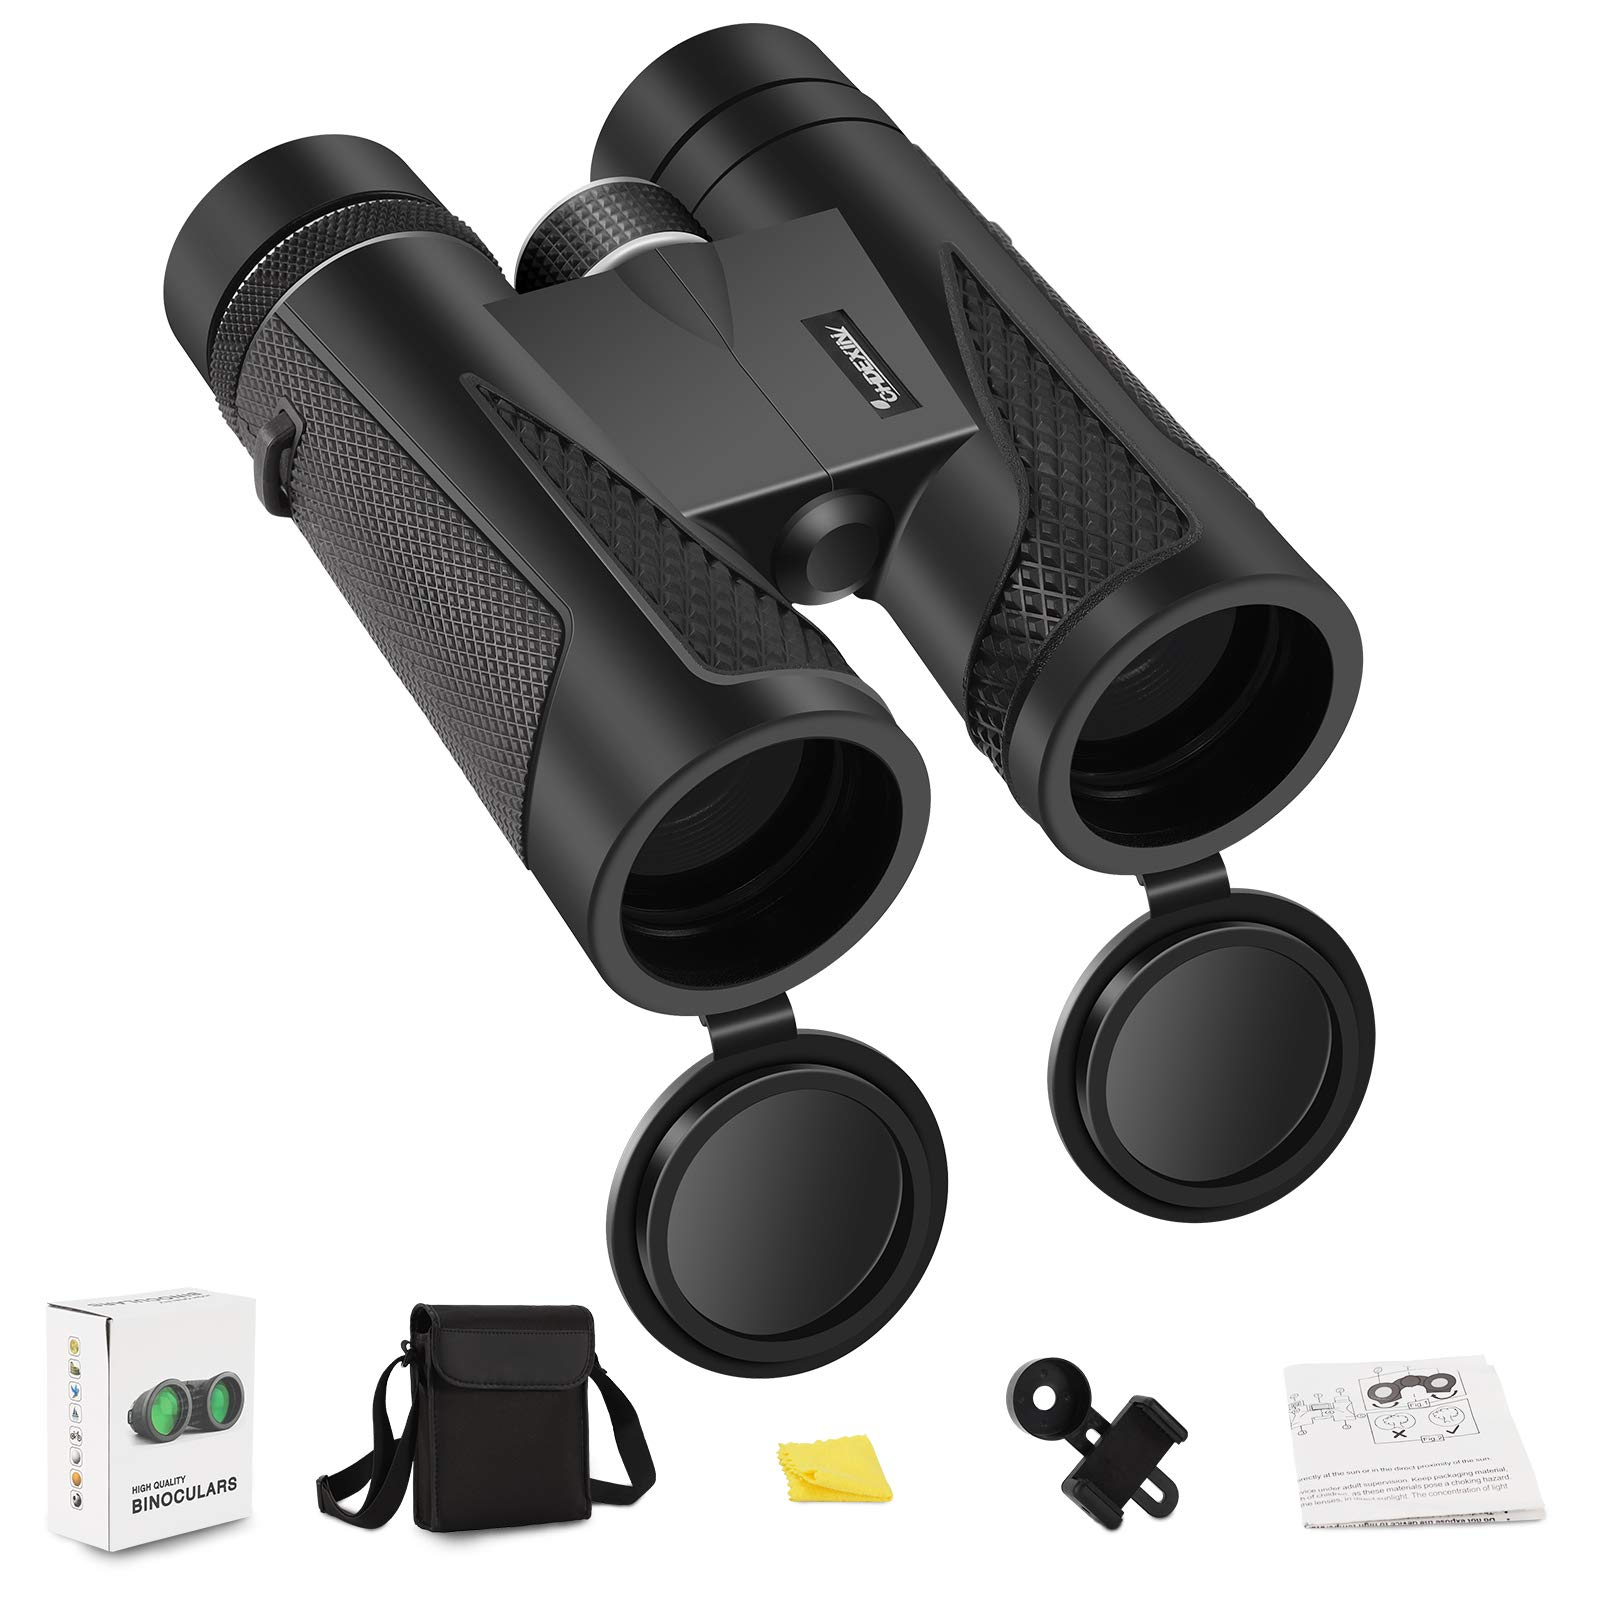 CHDEXIN 10x42 Binoculars, Binoculars for Adults and Kids, Binoculars for Hunting, Binoculars for Bird Watching Travel Concerts Sports Stargazing and Planets-Large Lens BAK4 Prism FMC-with Phone Mount